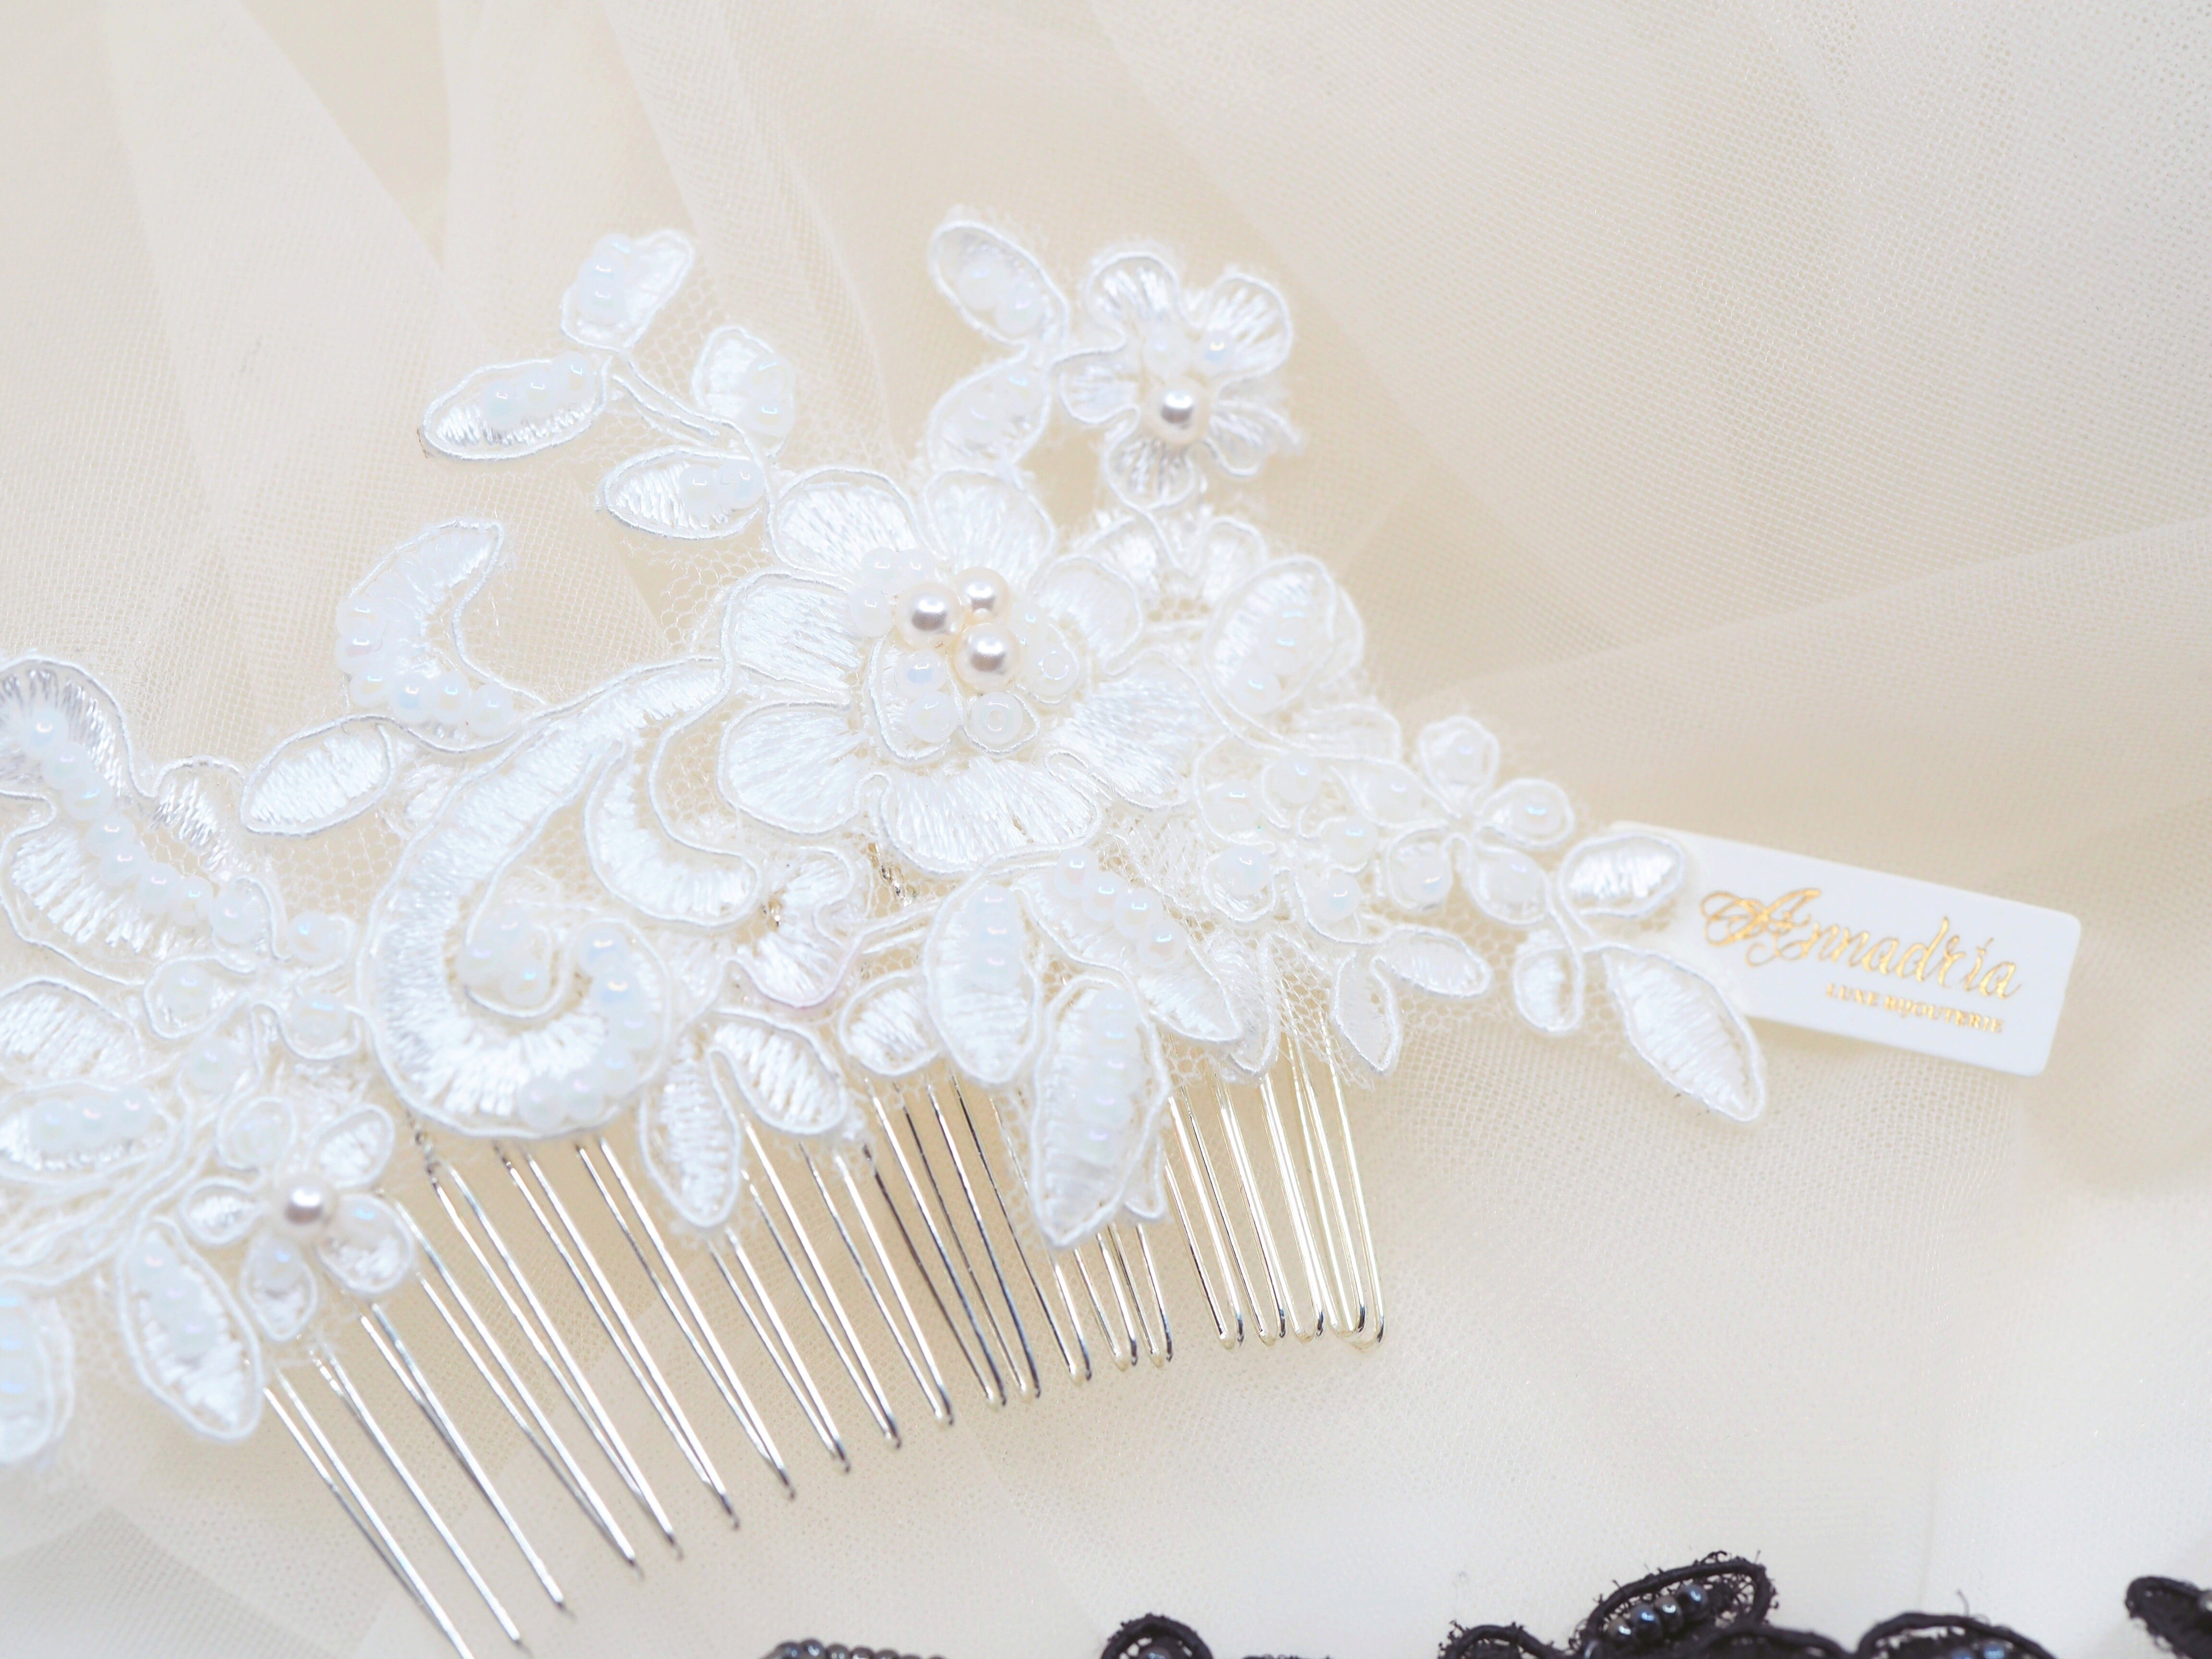 Vintage style lace headpiece handmade, embellished beaded occasion hair accessories